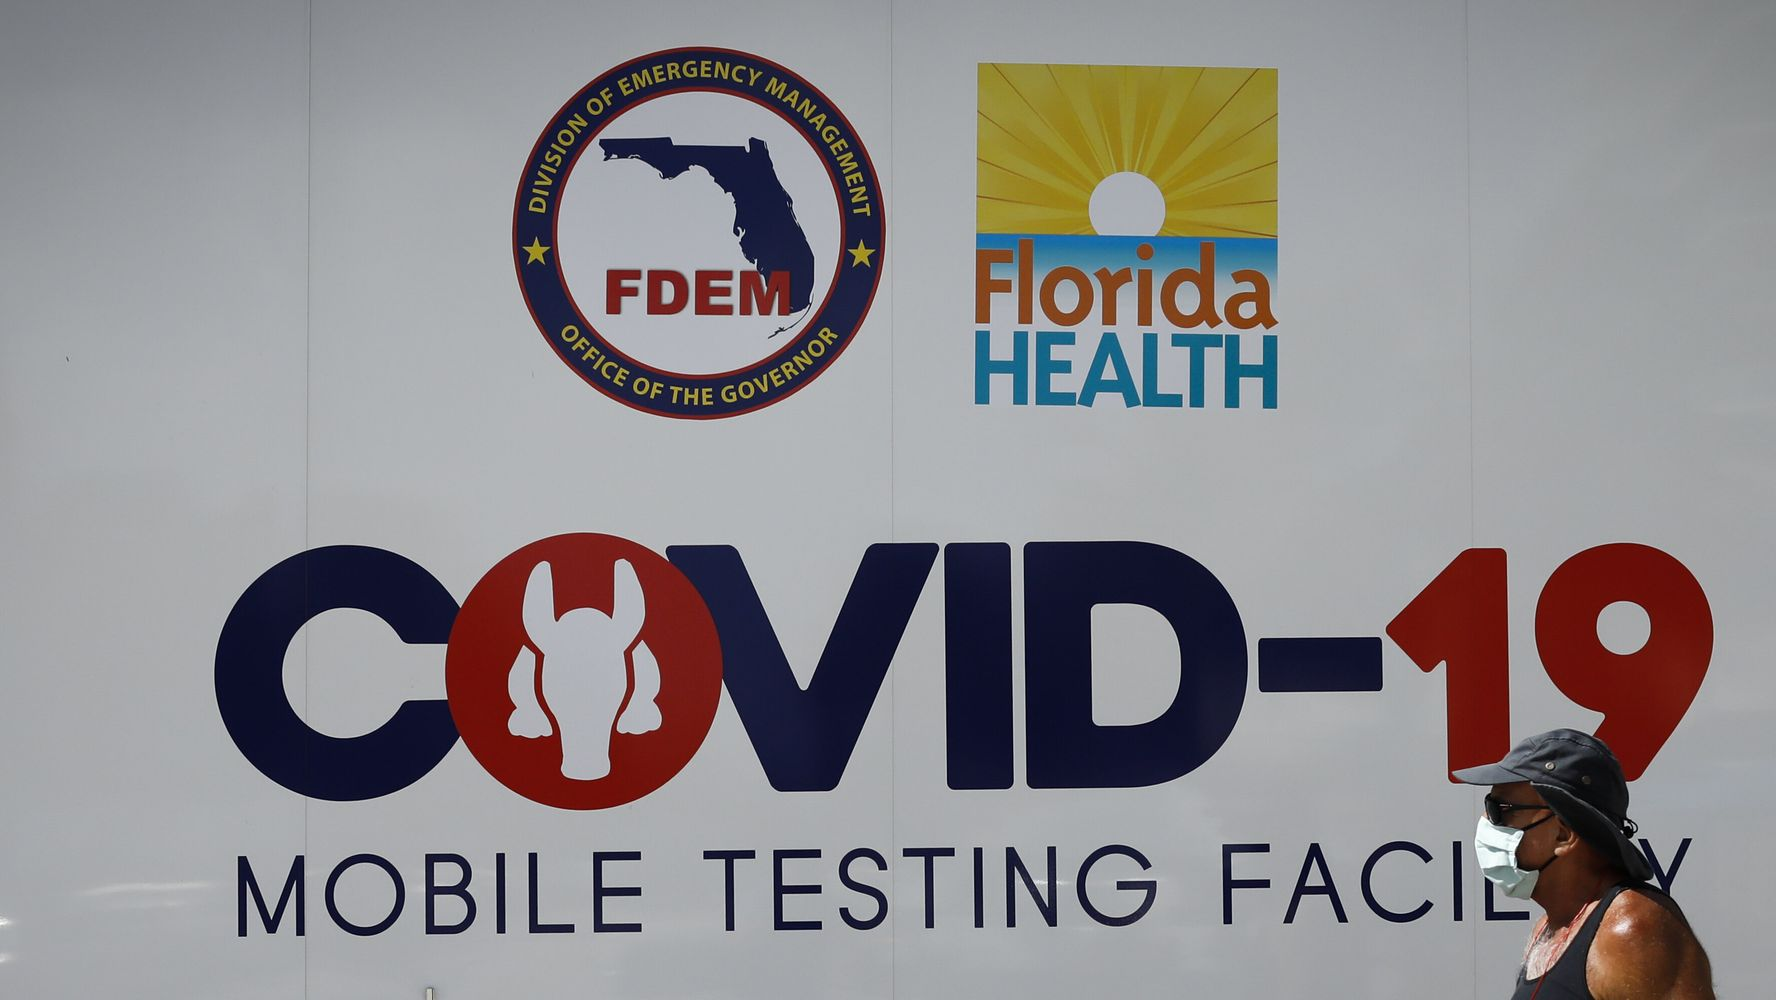 Florida's COVID-19 Cases Surge Past New York's As U.S. Deaths Hit 1,000 For 4th Day